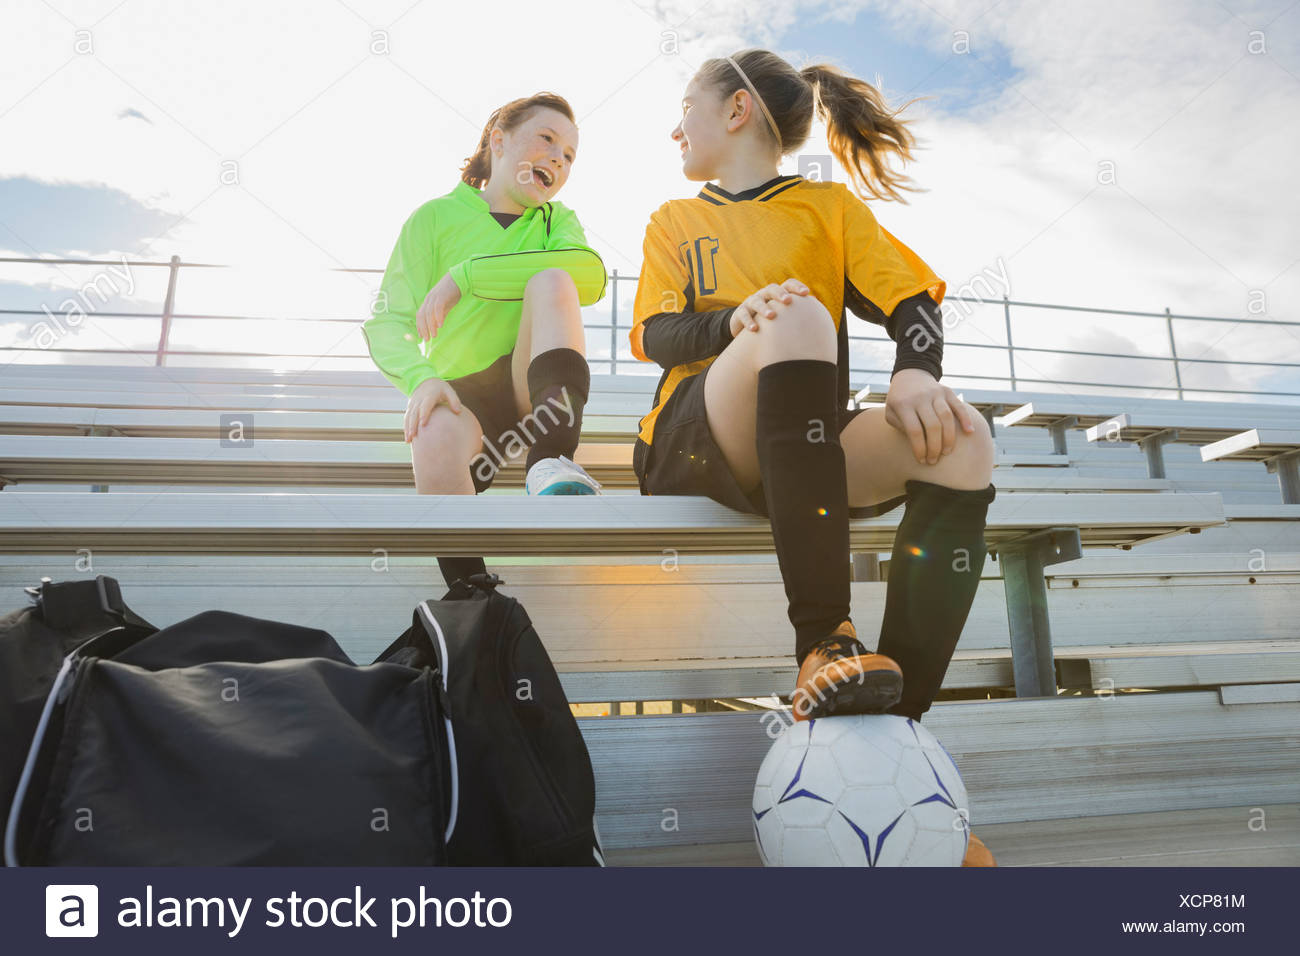 Girls in soccer uniforms sitting on bleachers Stock Photo